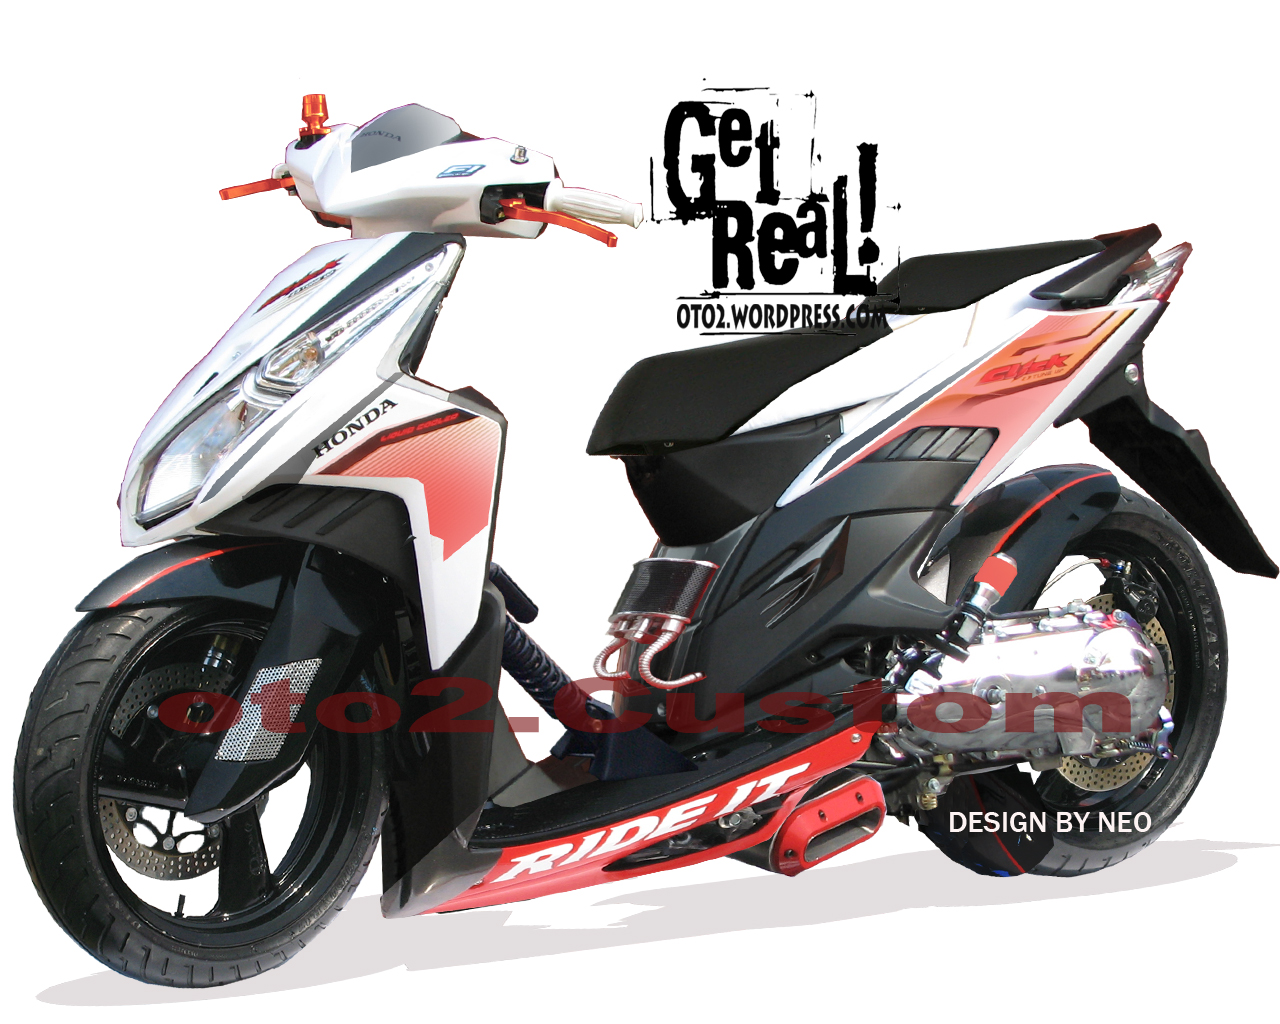 Motor Cycle Modifikasi Modifikasi HONDA VARIO CBS TECHNO REVIEW